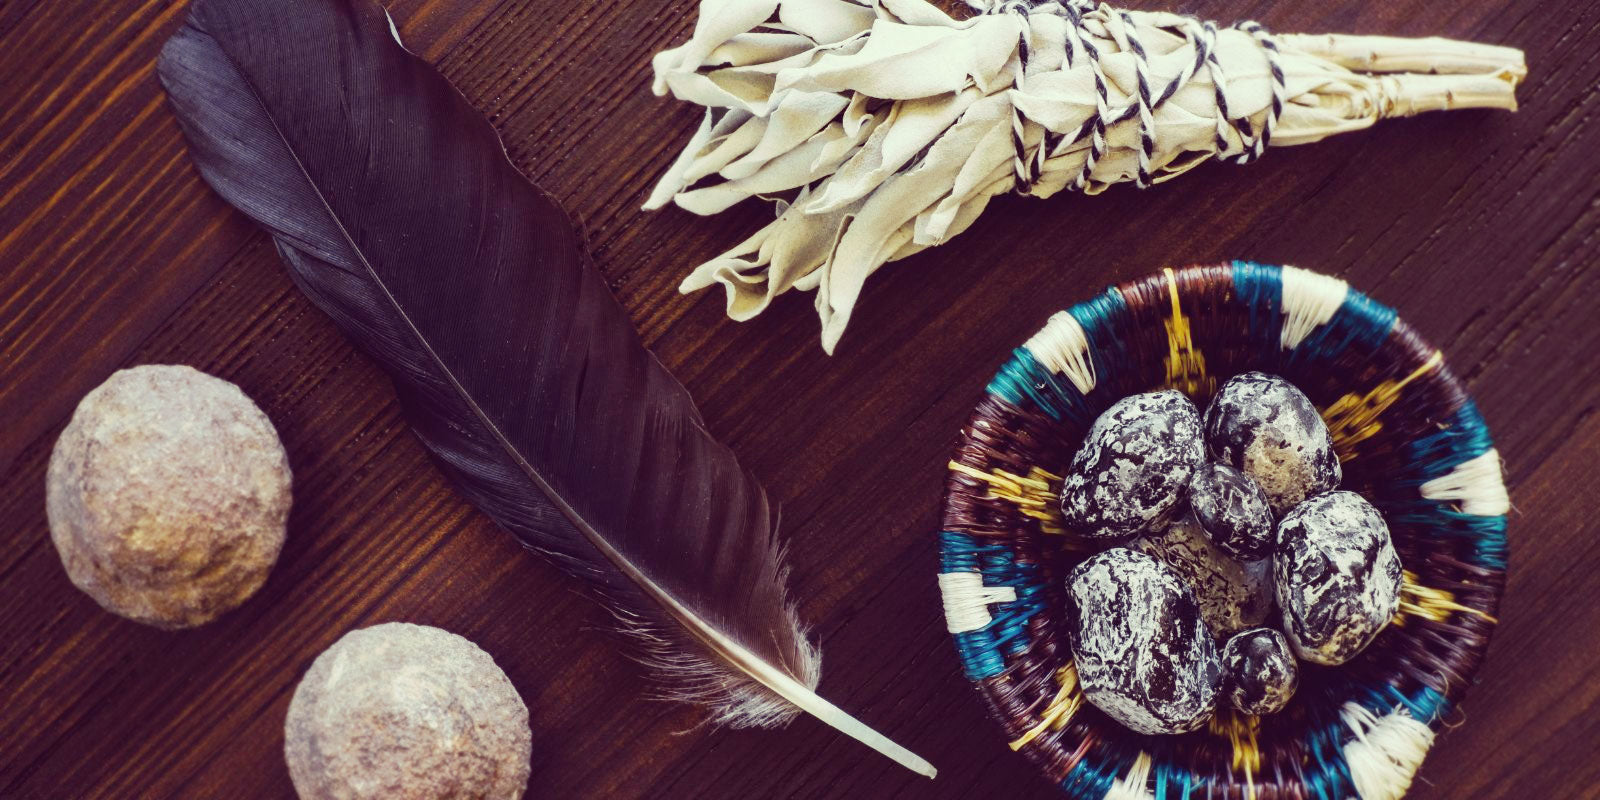 Feathers, stones, and sage.